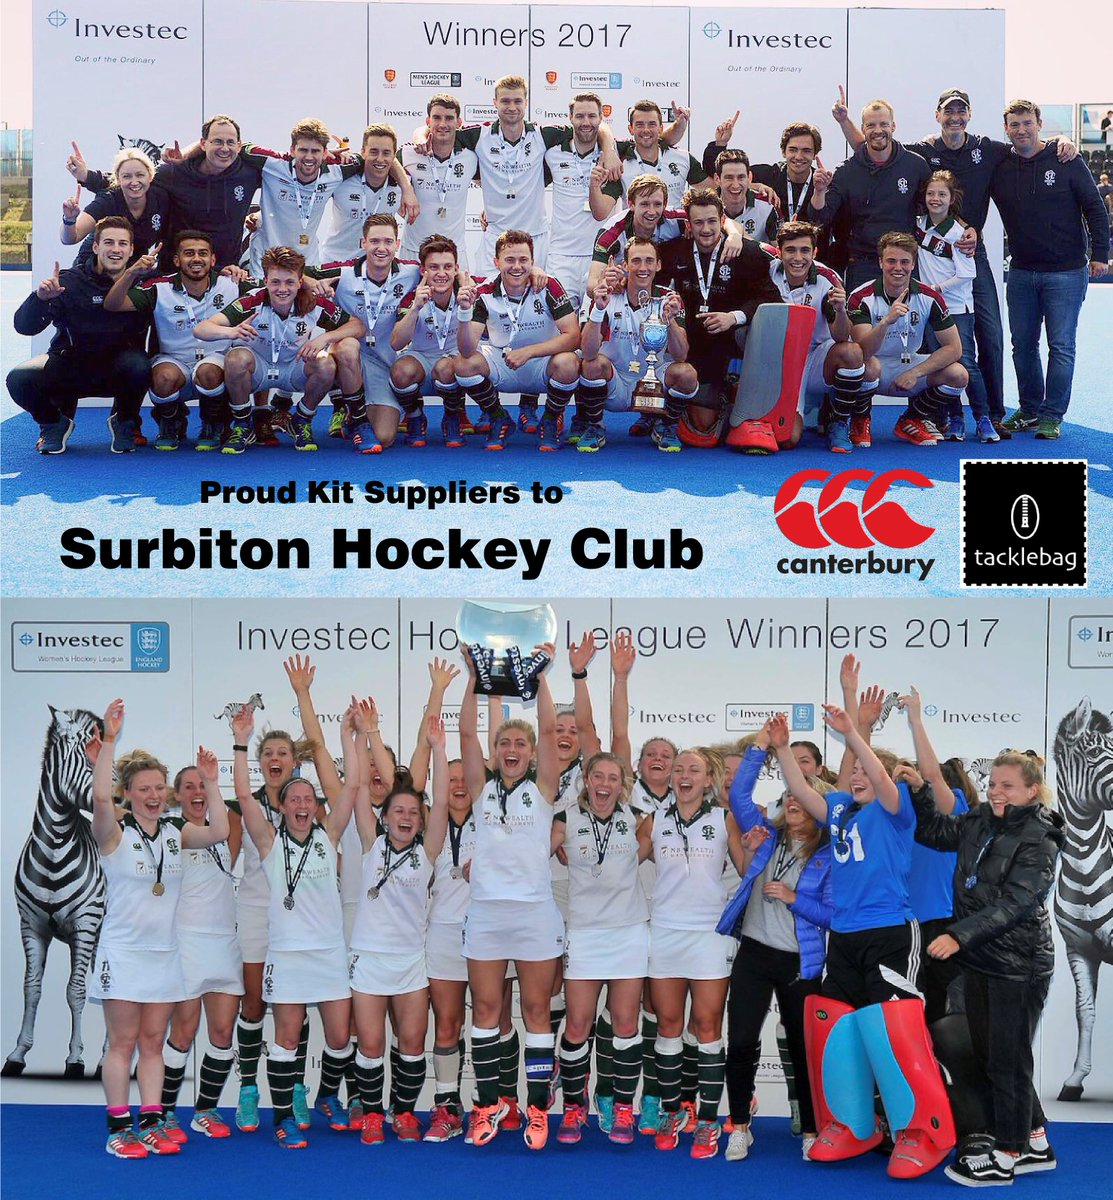 Men's Premier Division & Women's Premier Division CHAMPIONS 2016-17! Massive congratulations to @SurbitonHC #CHAMPIONS #CommittedToTheGamepic.twitter.com/Rj4eoml9As